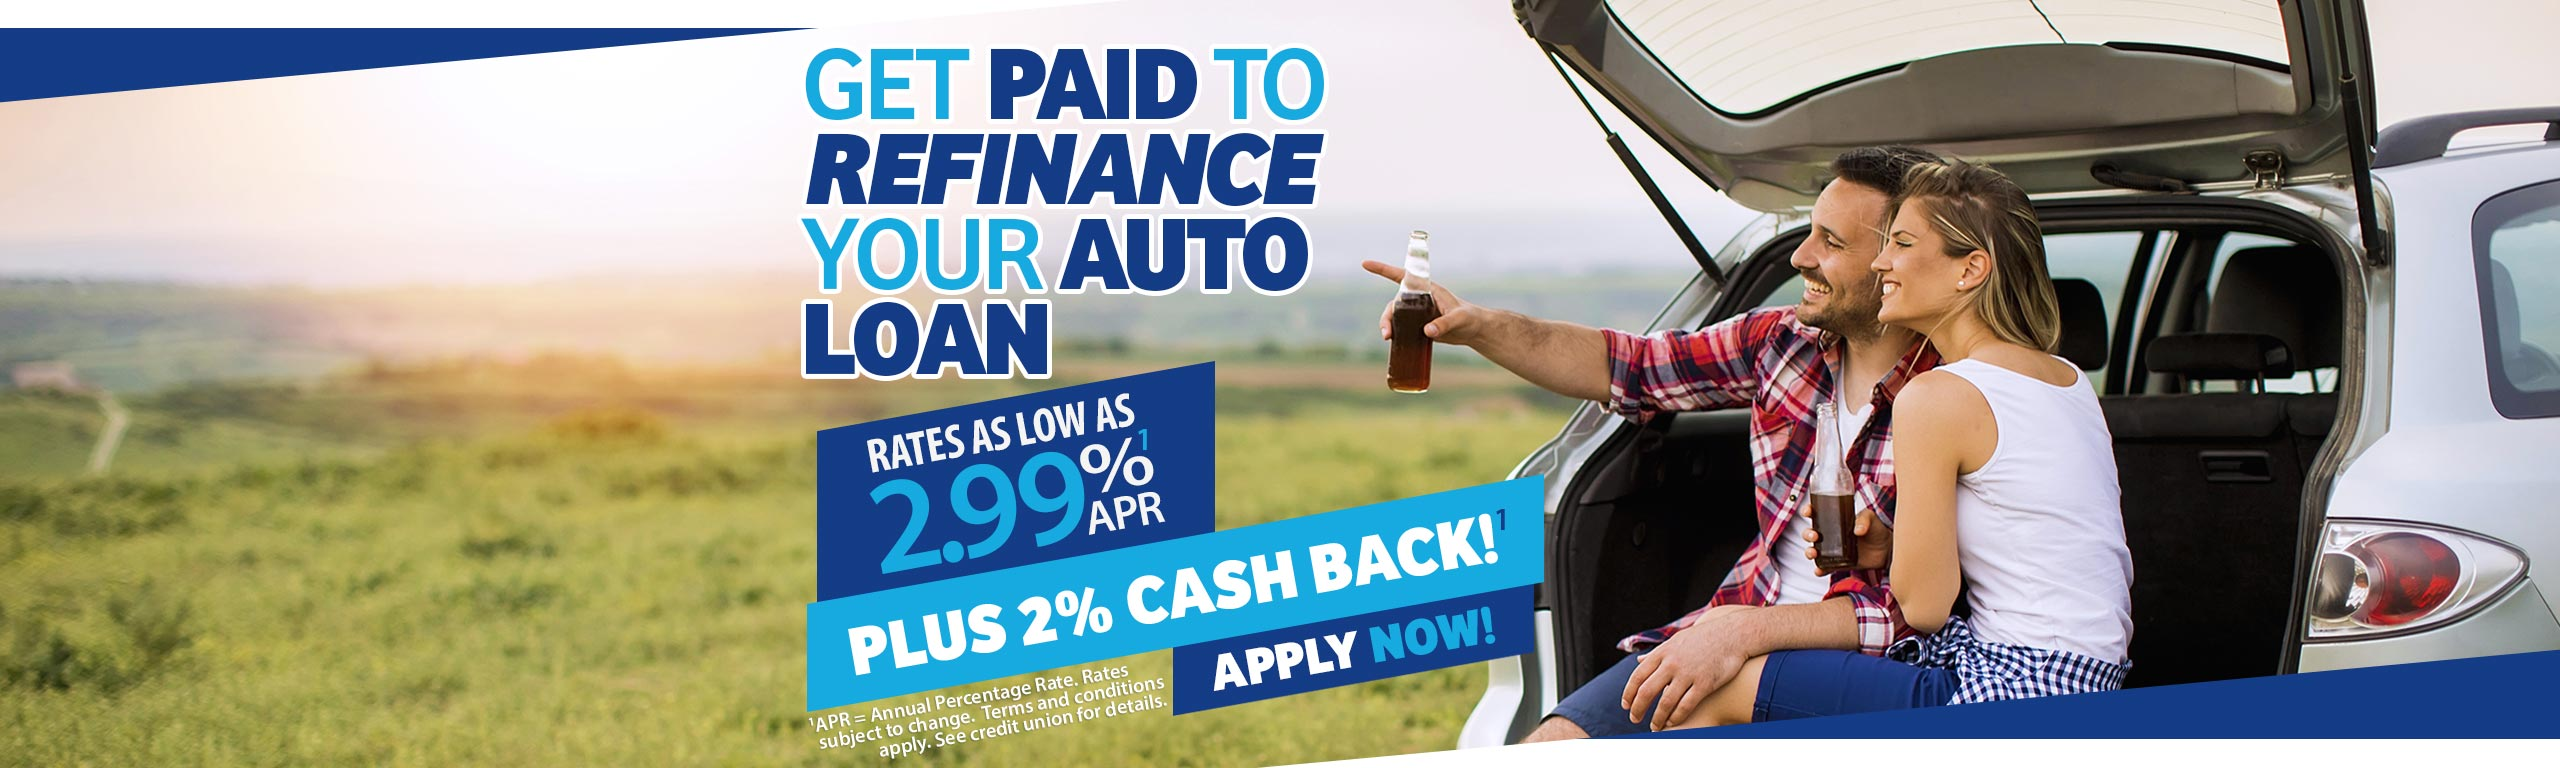 Get Paid to Refinance Your Auto Loan